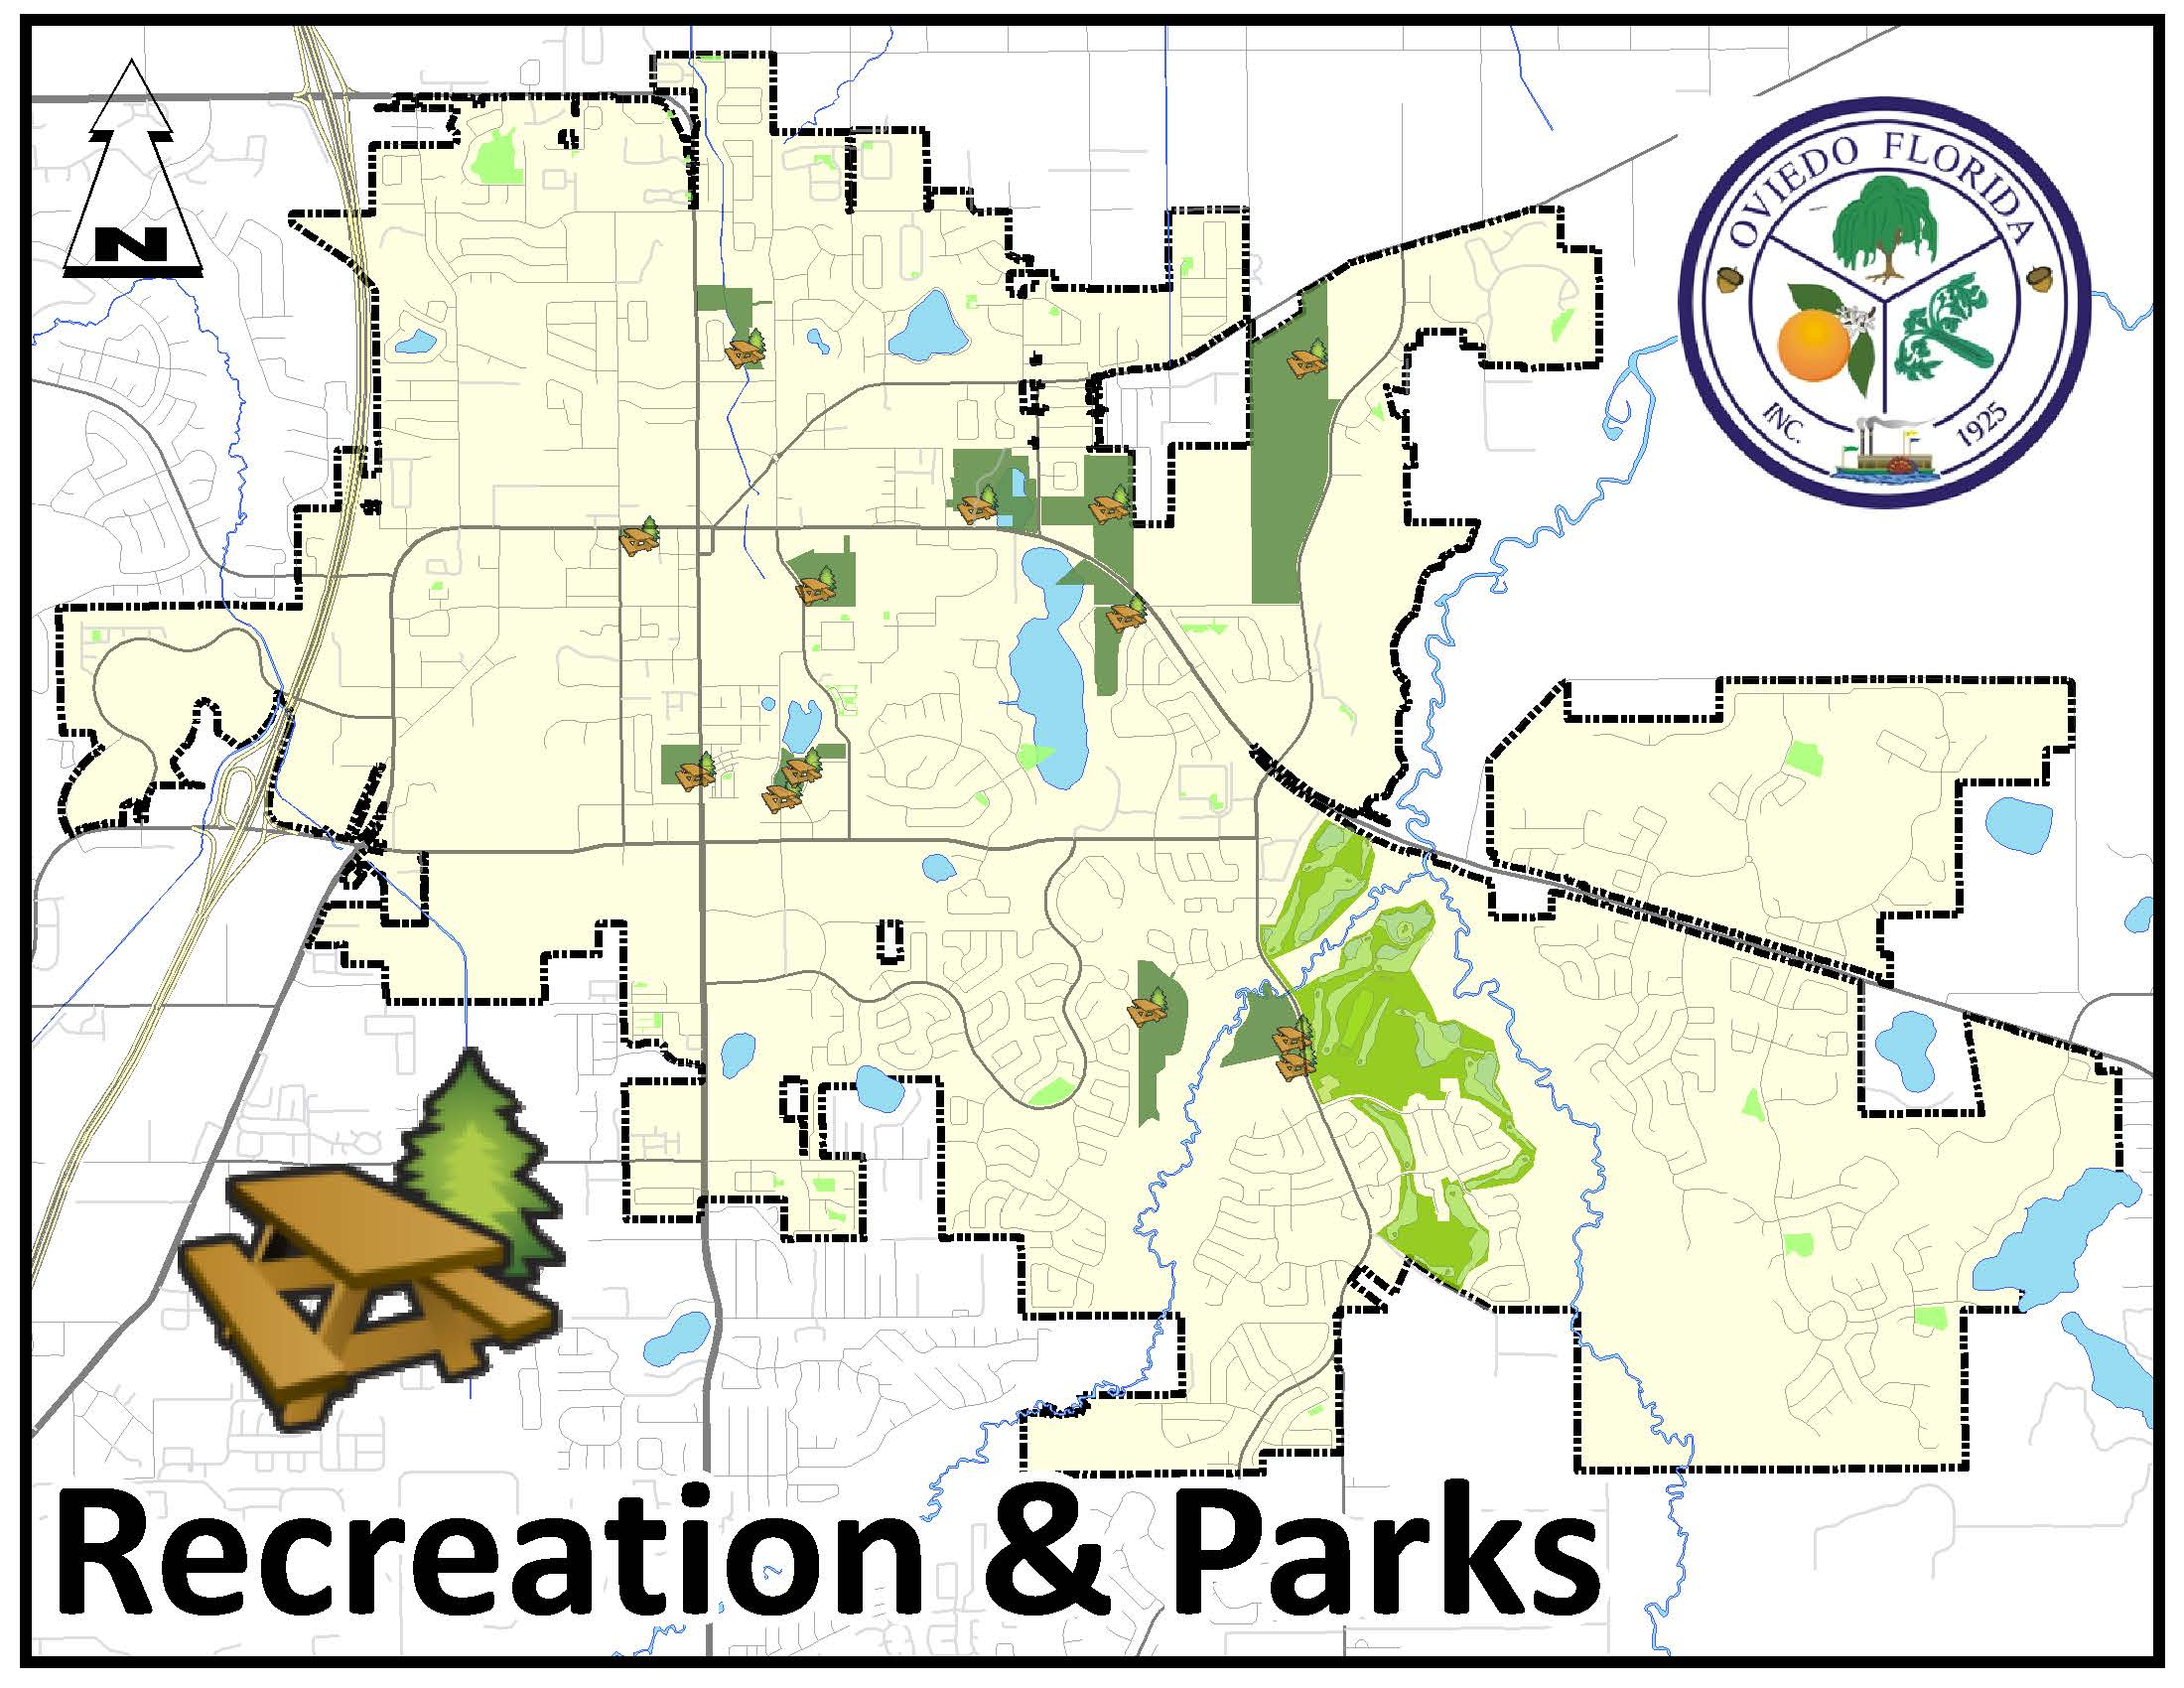 Recreation and Parks Information